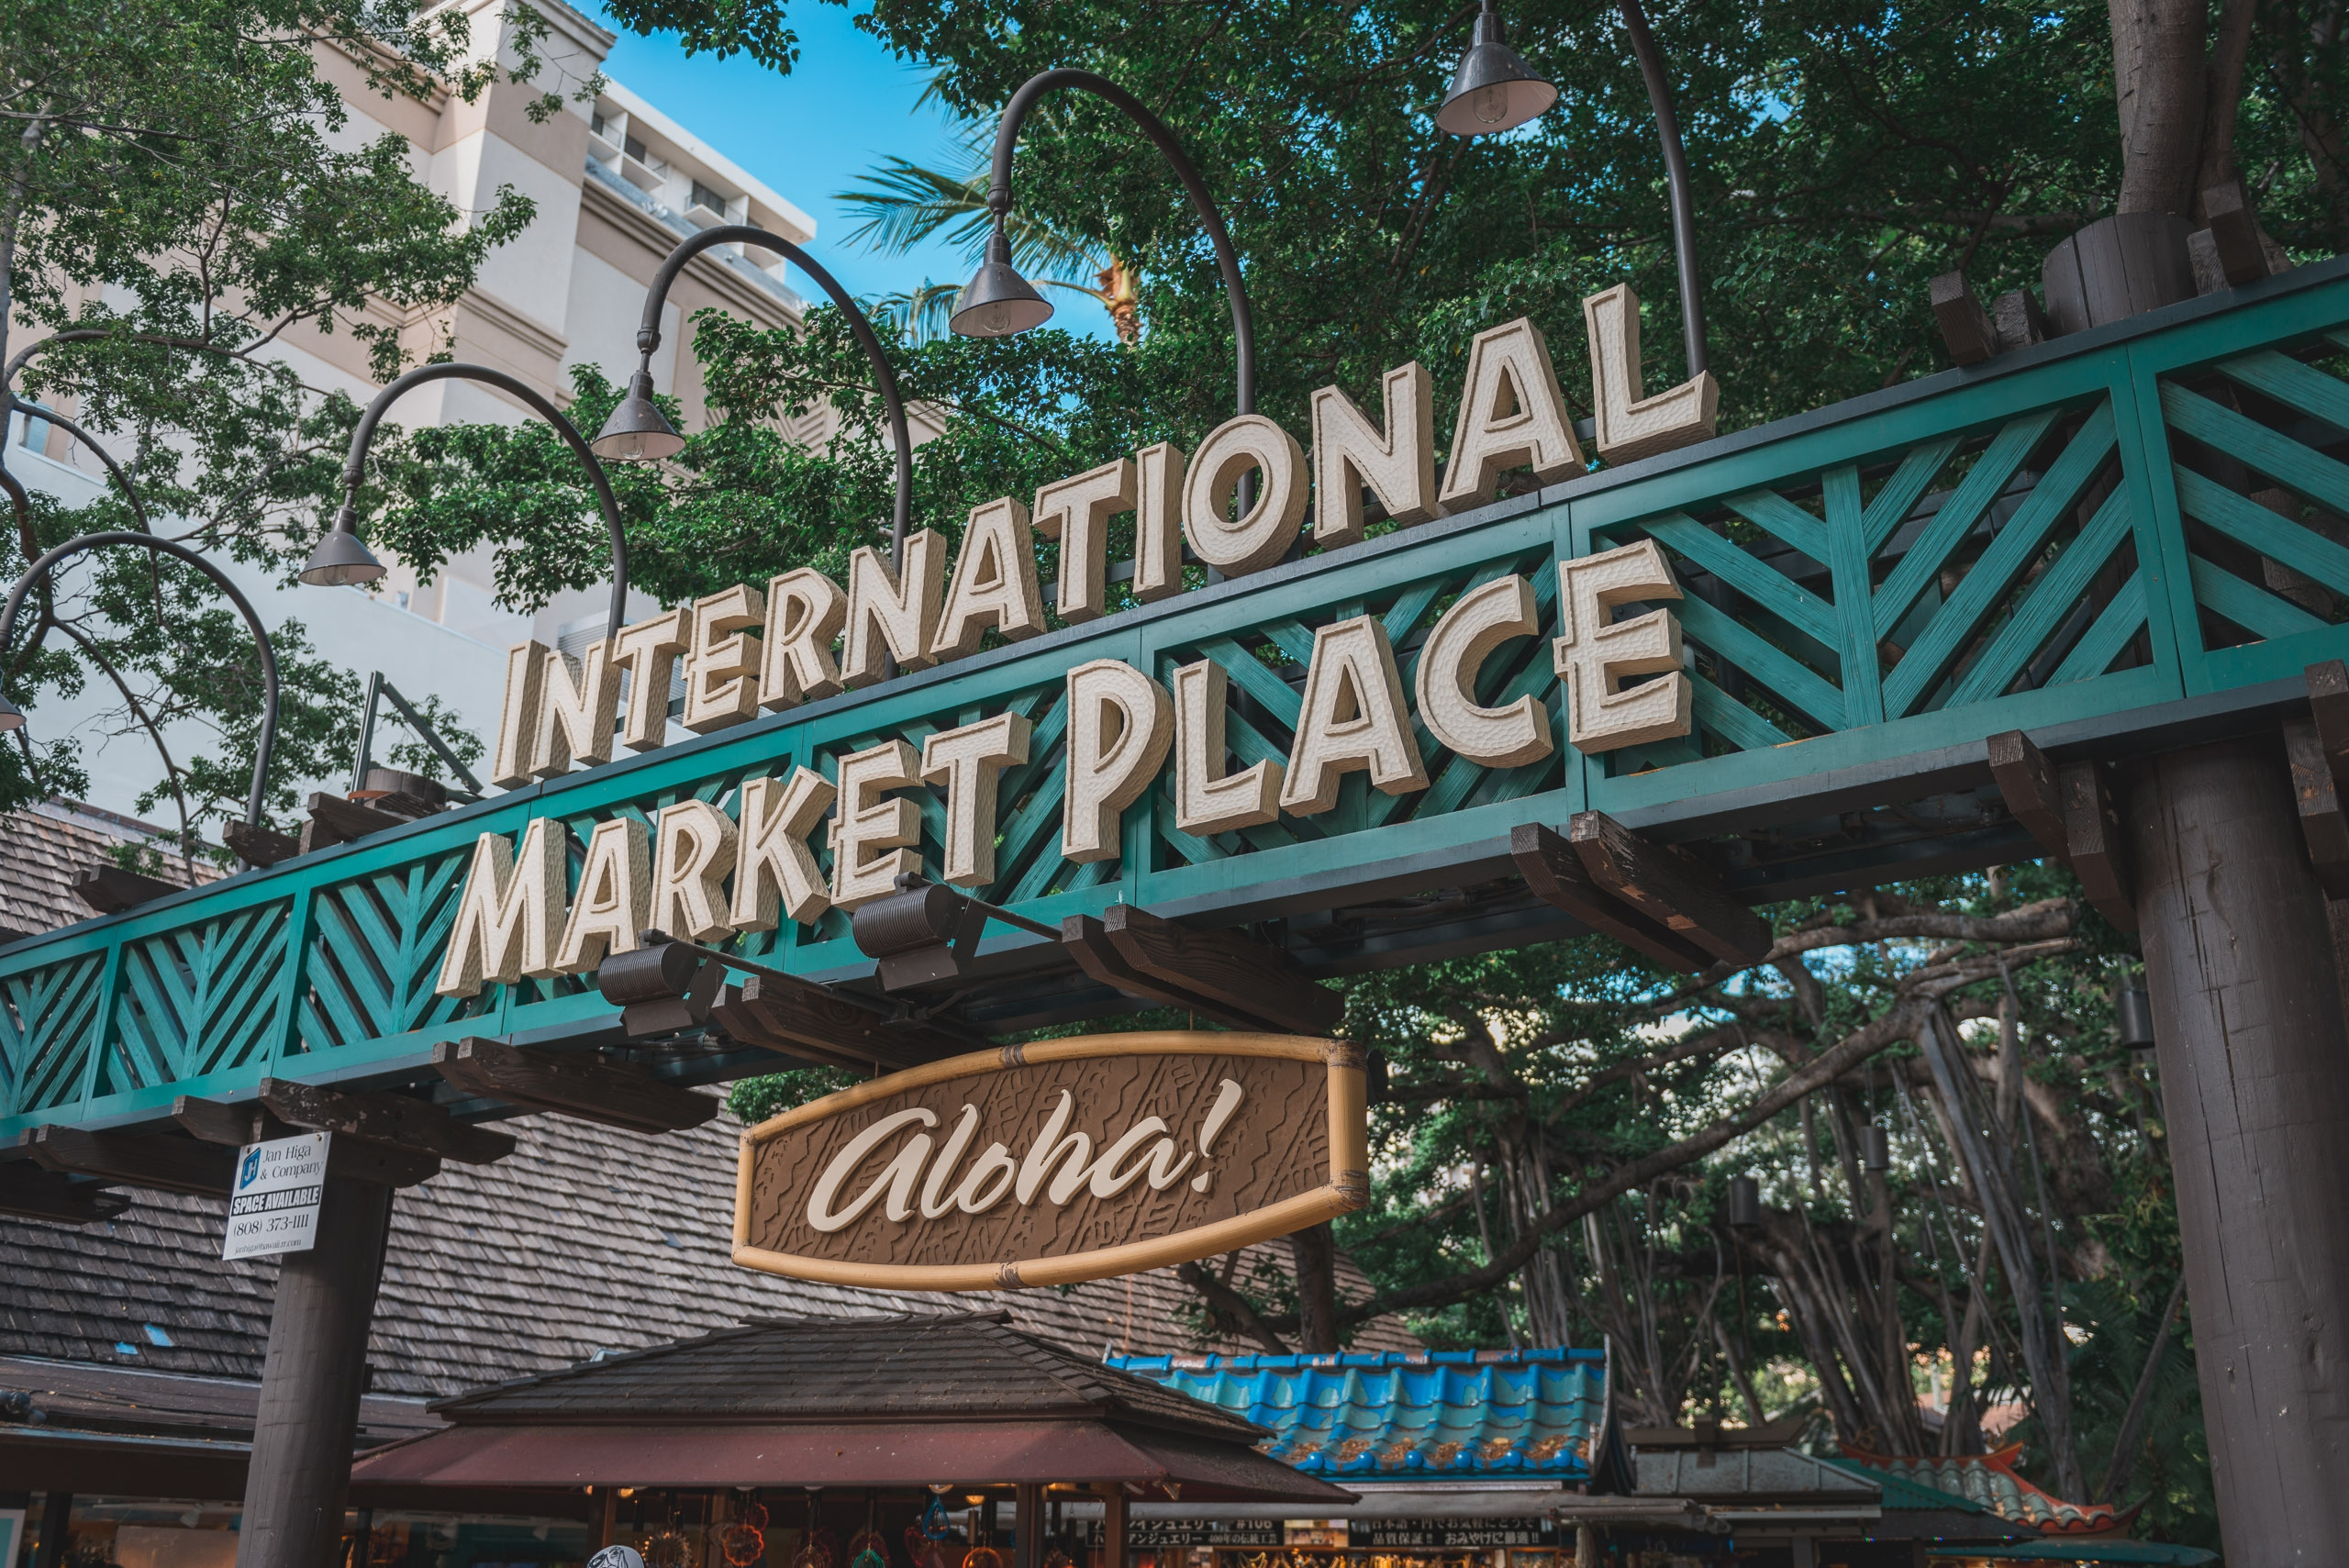 The International Market Place